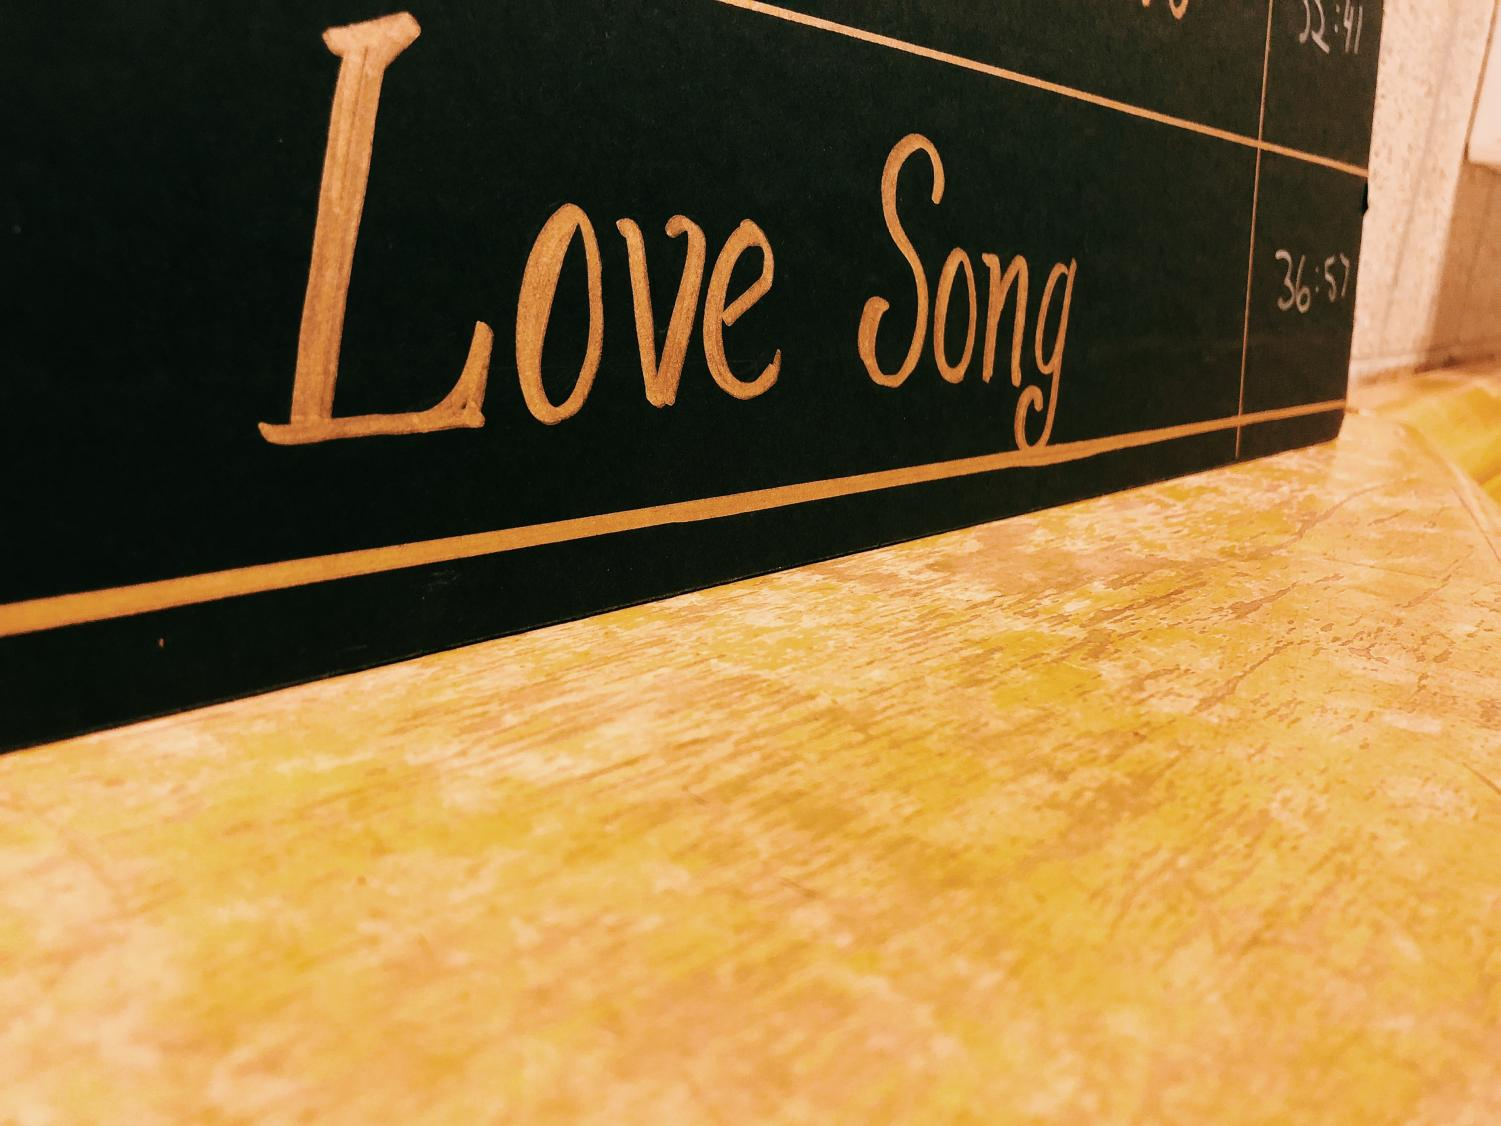 Love Song, this year's WATA submission for METG Festival